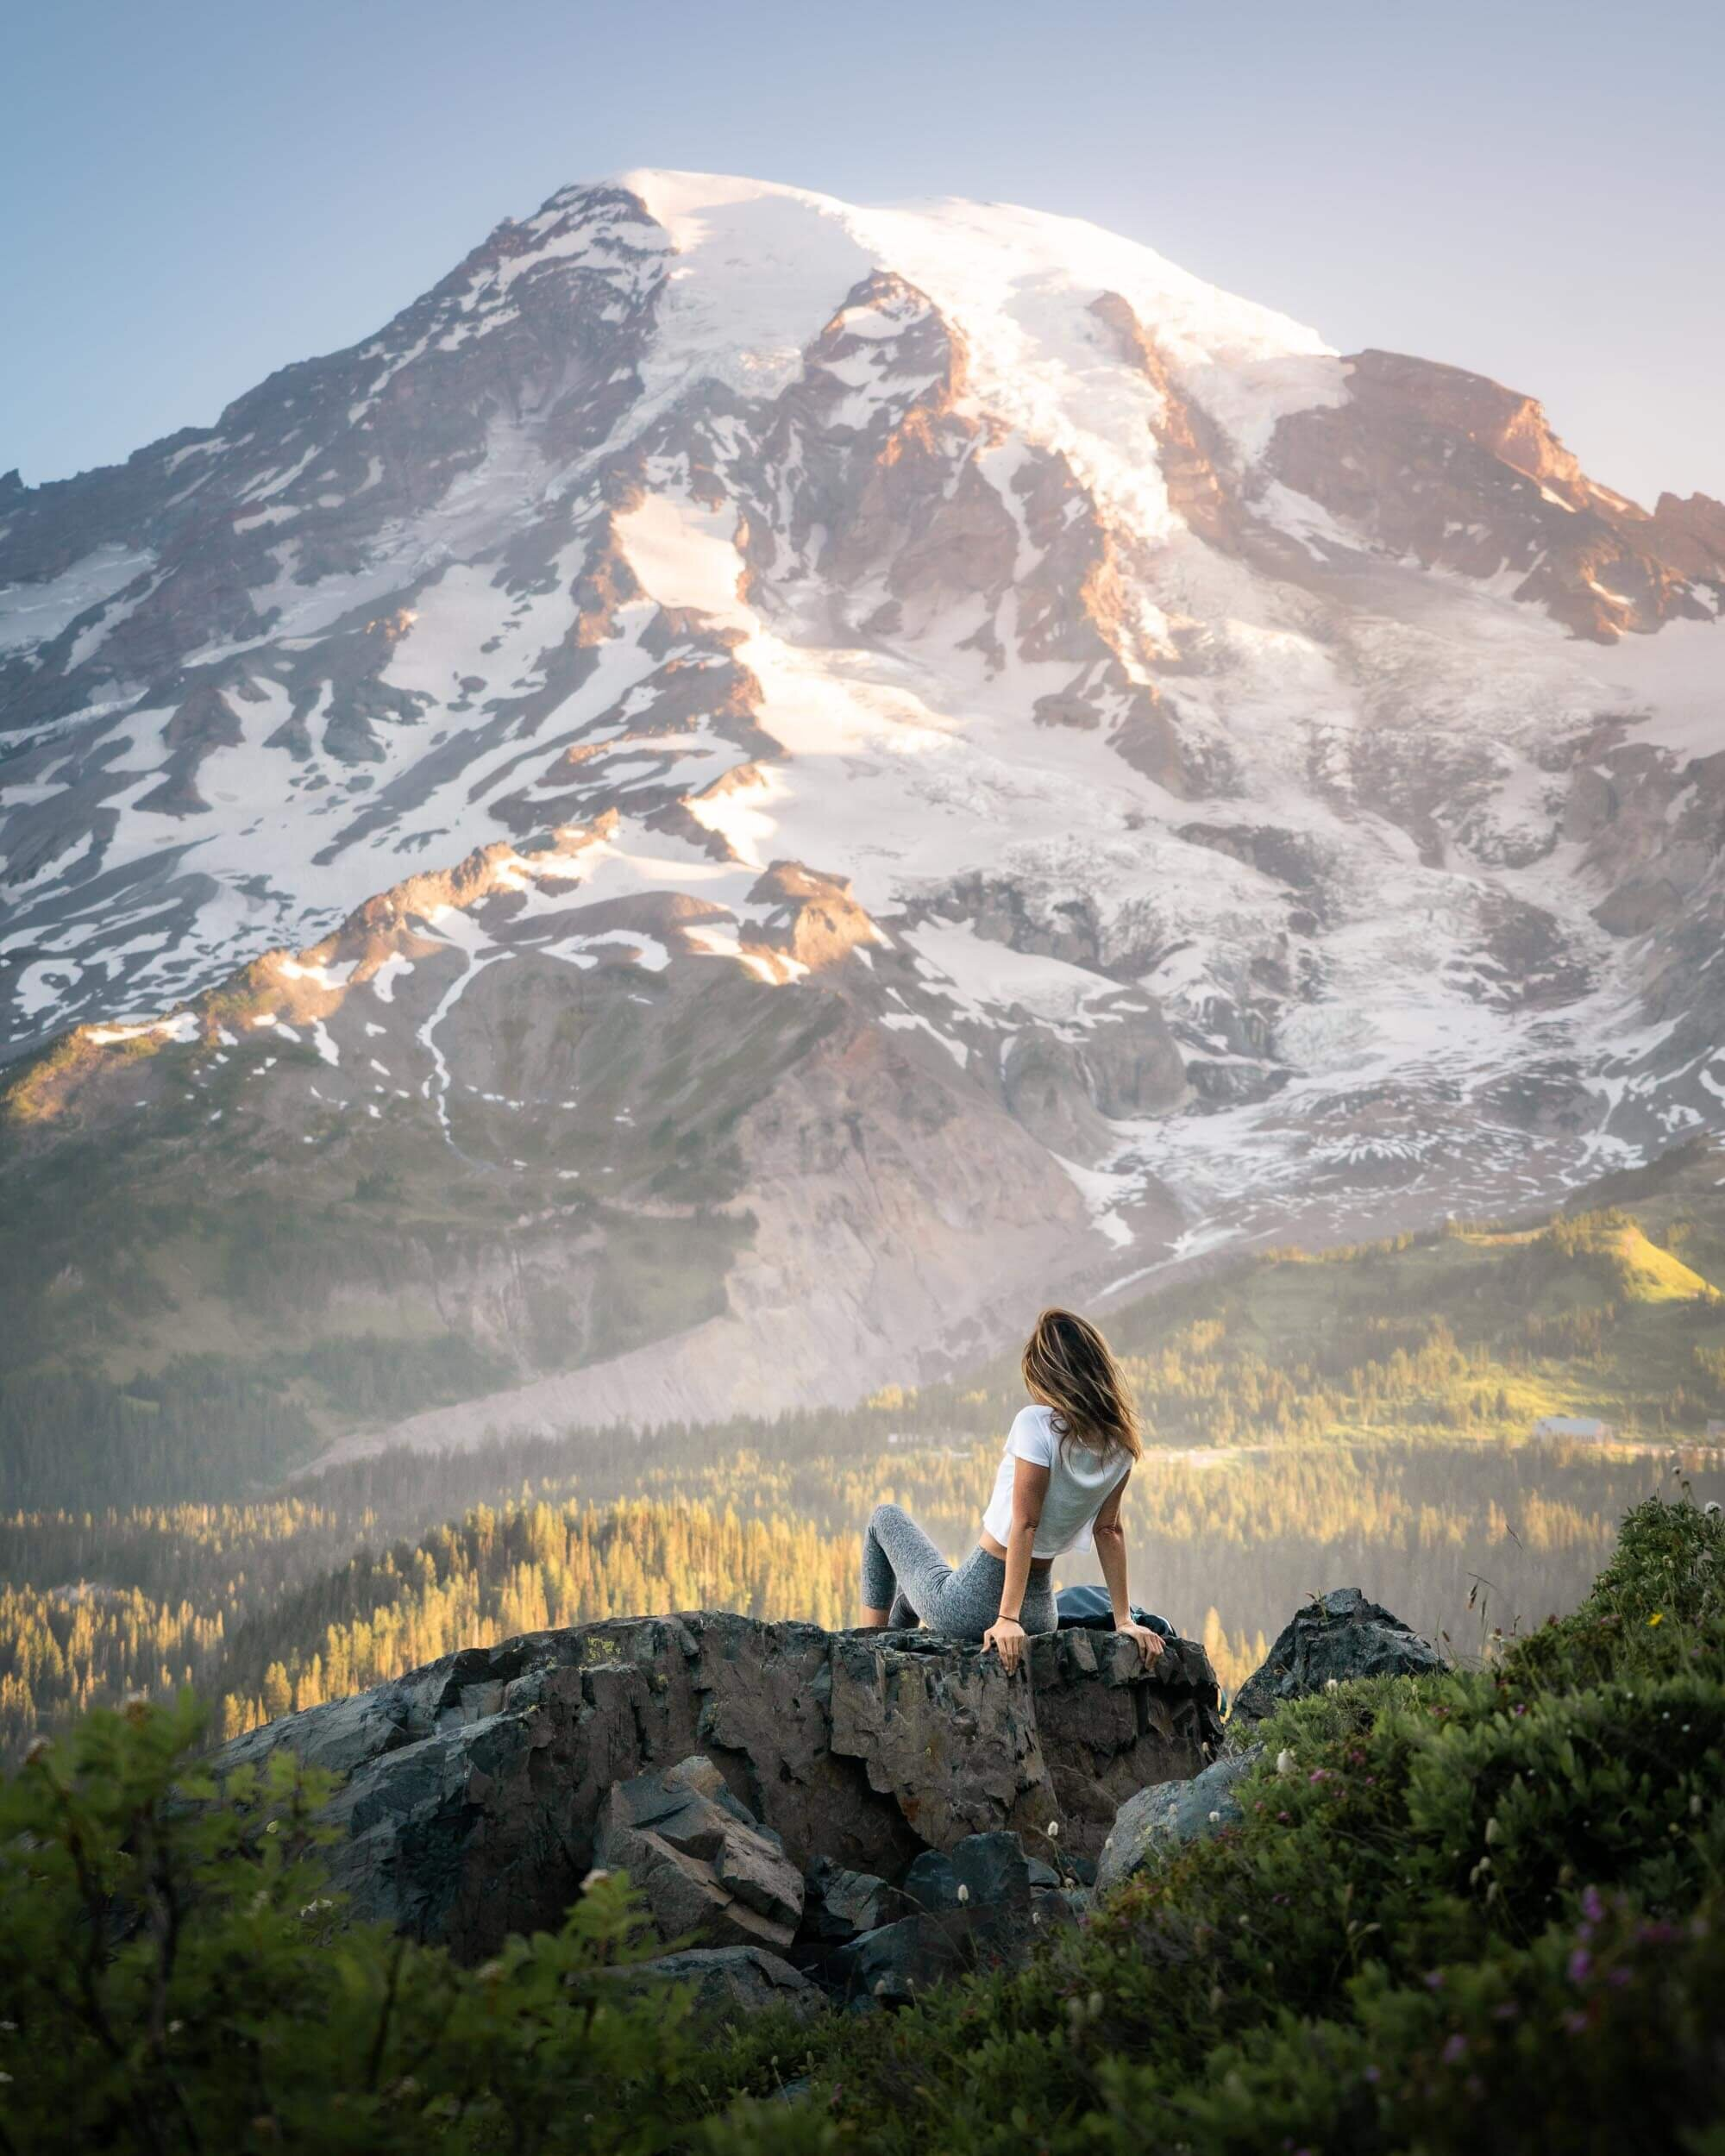 Expansive views of Mount Rainier at sunrise from the Paradise side of the Mountain.